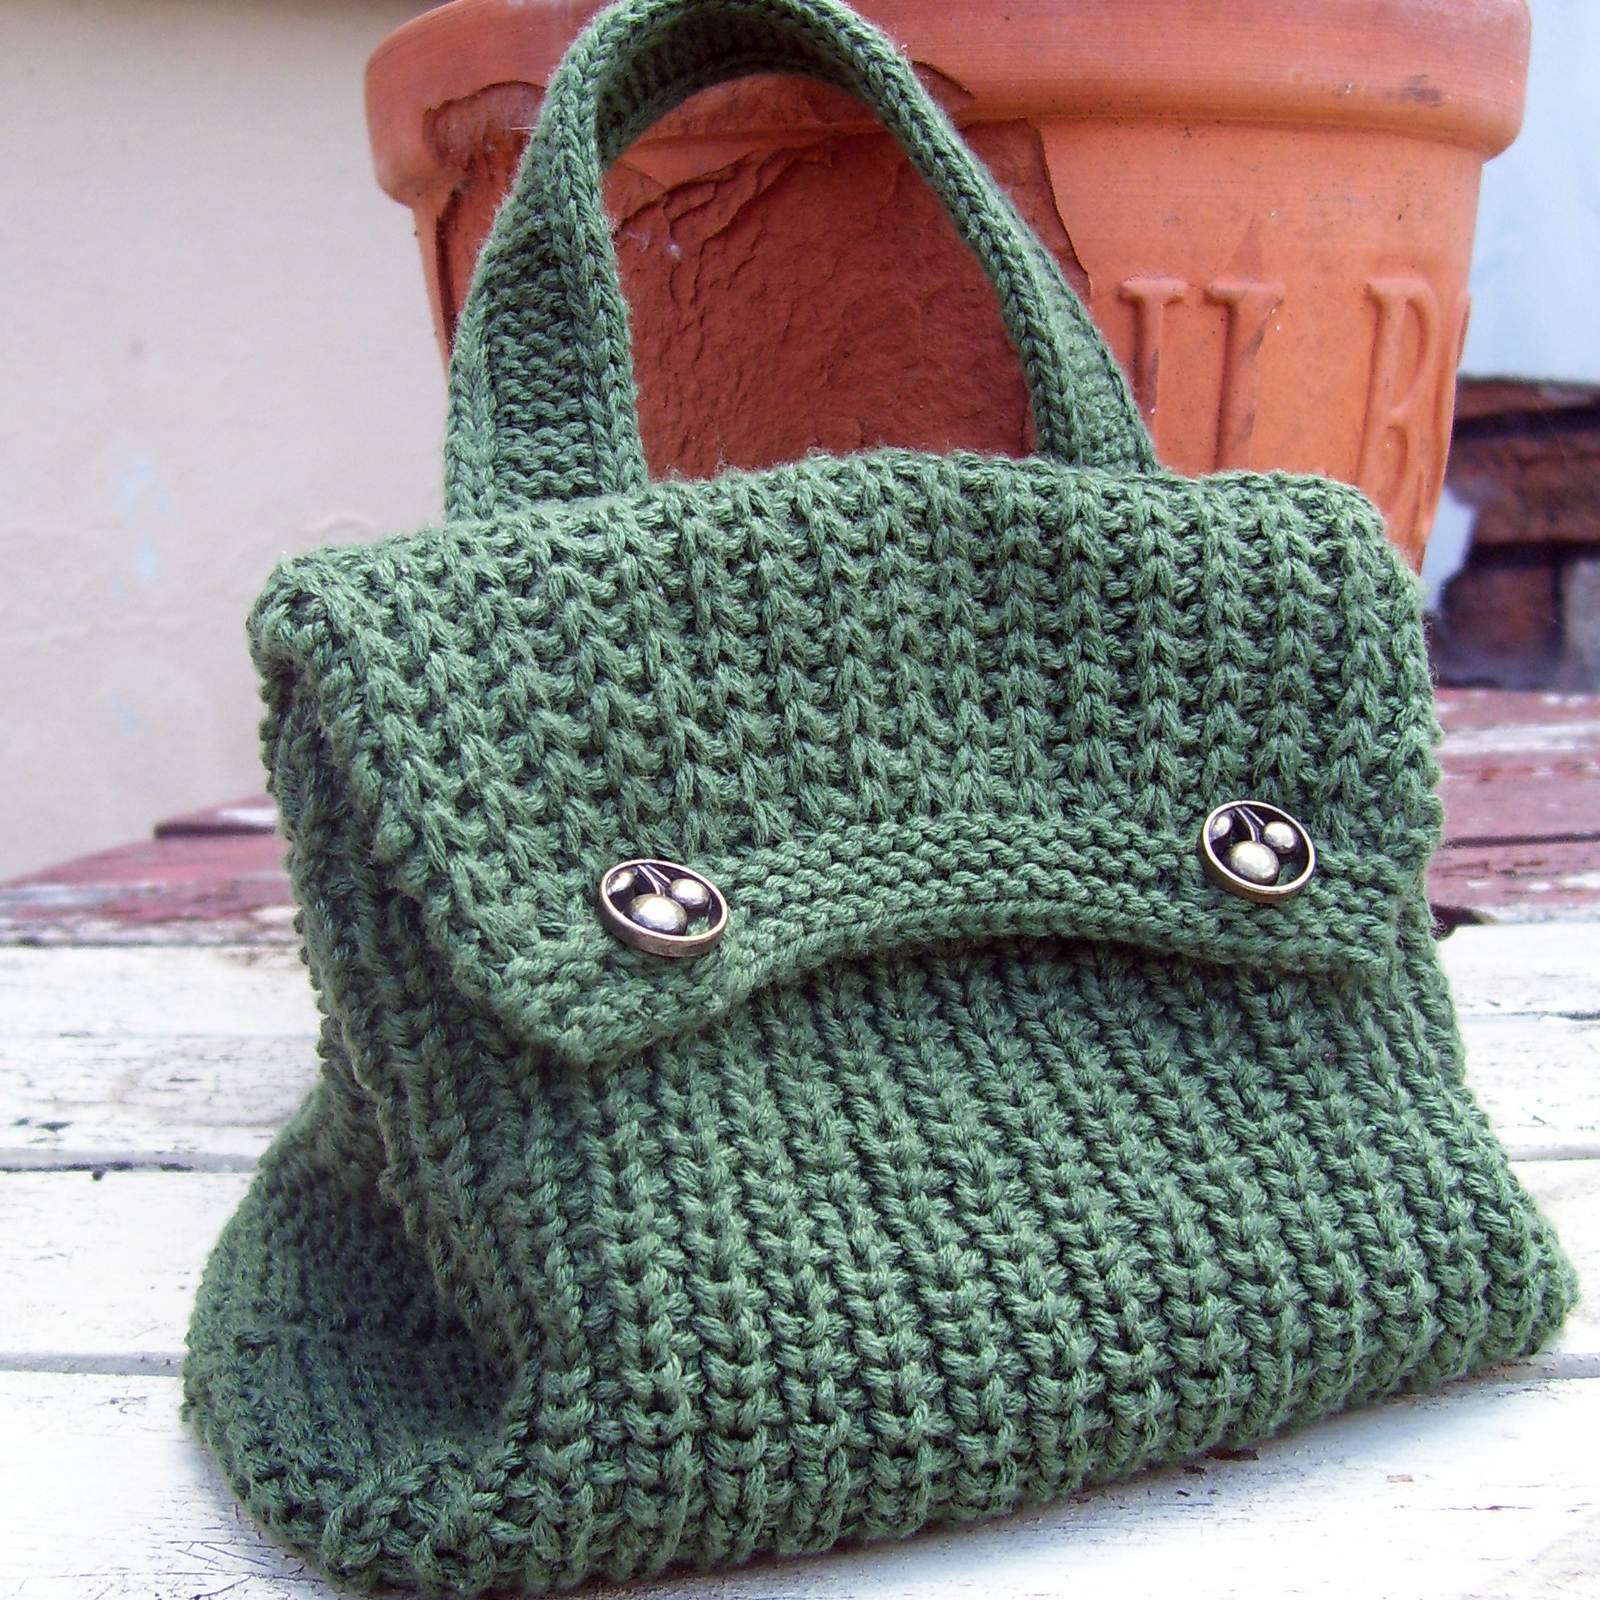 Crochet Bag Patterns Free Download : Over 200 Free Knitted Bags, Purses and Totes Knitting Patterns